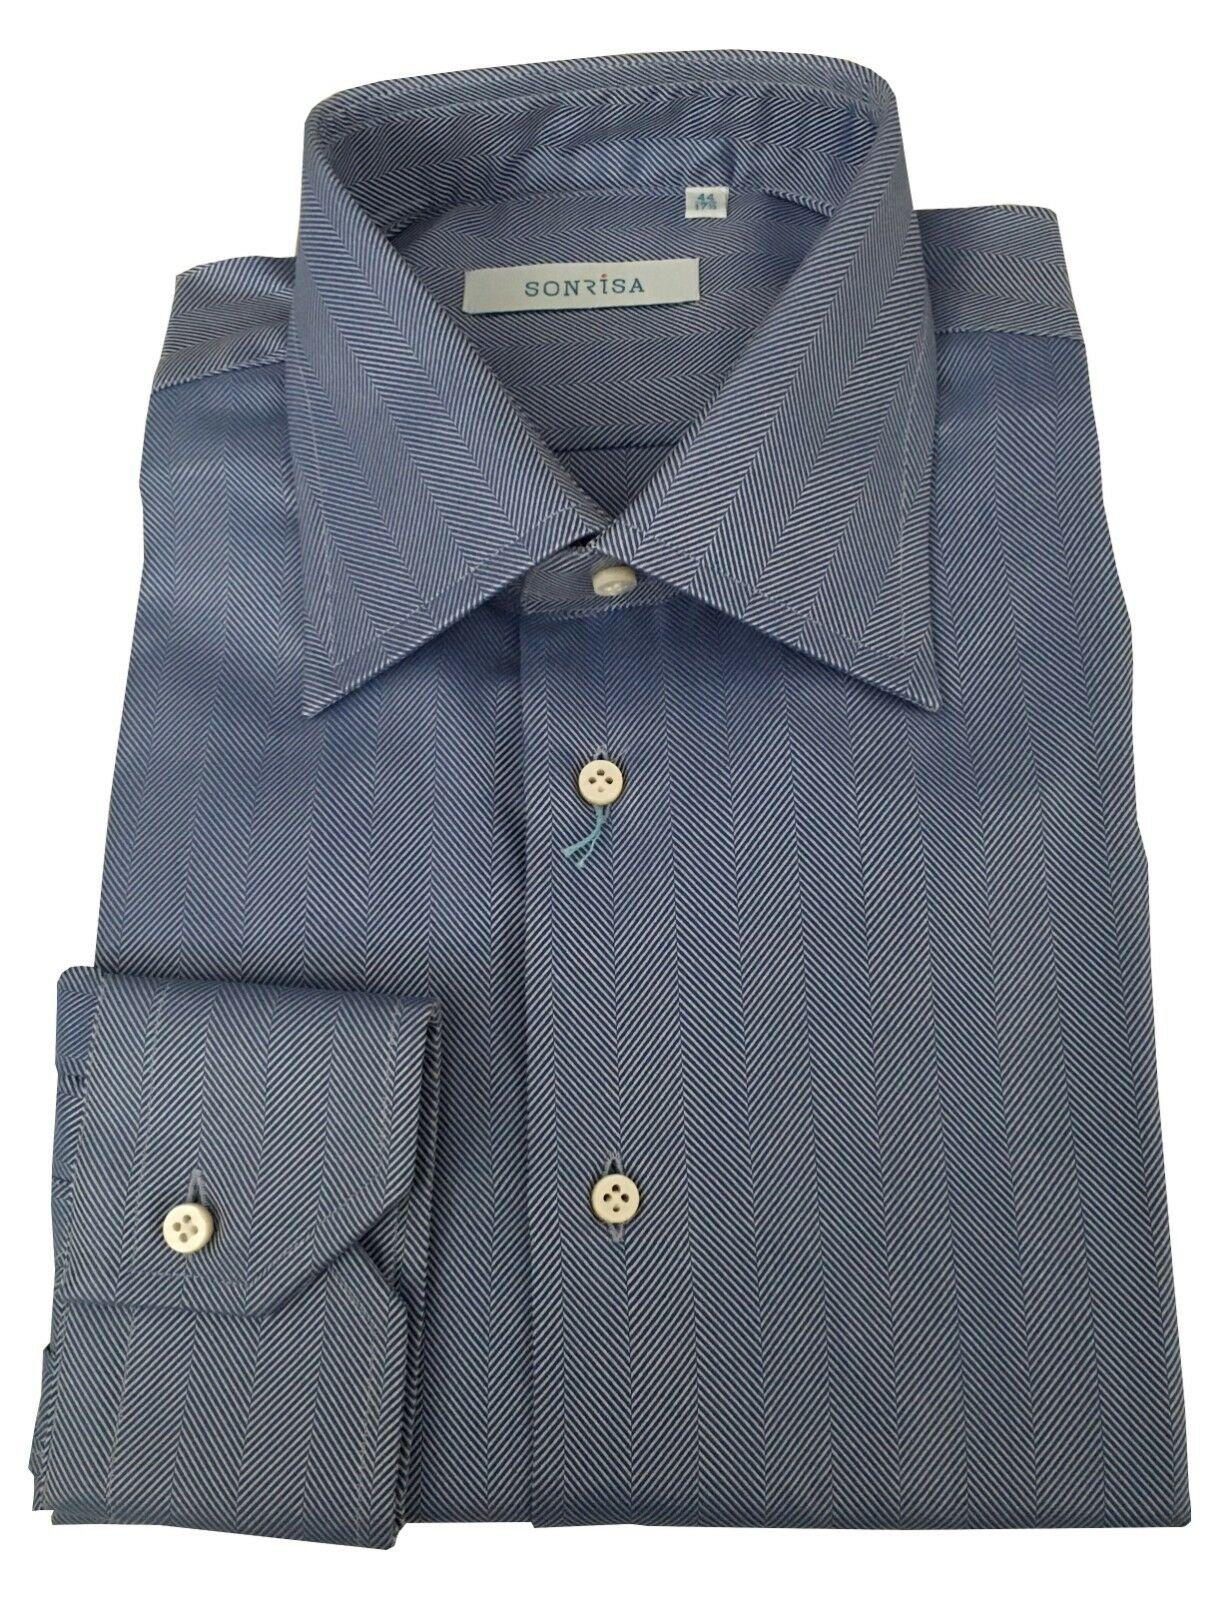 SONRISA men's shirts fabric herringbone 100% cotton MADE IN ITALY